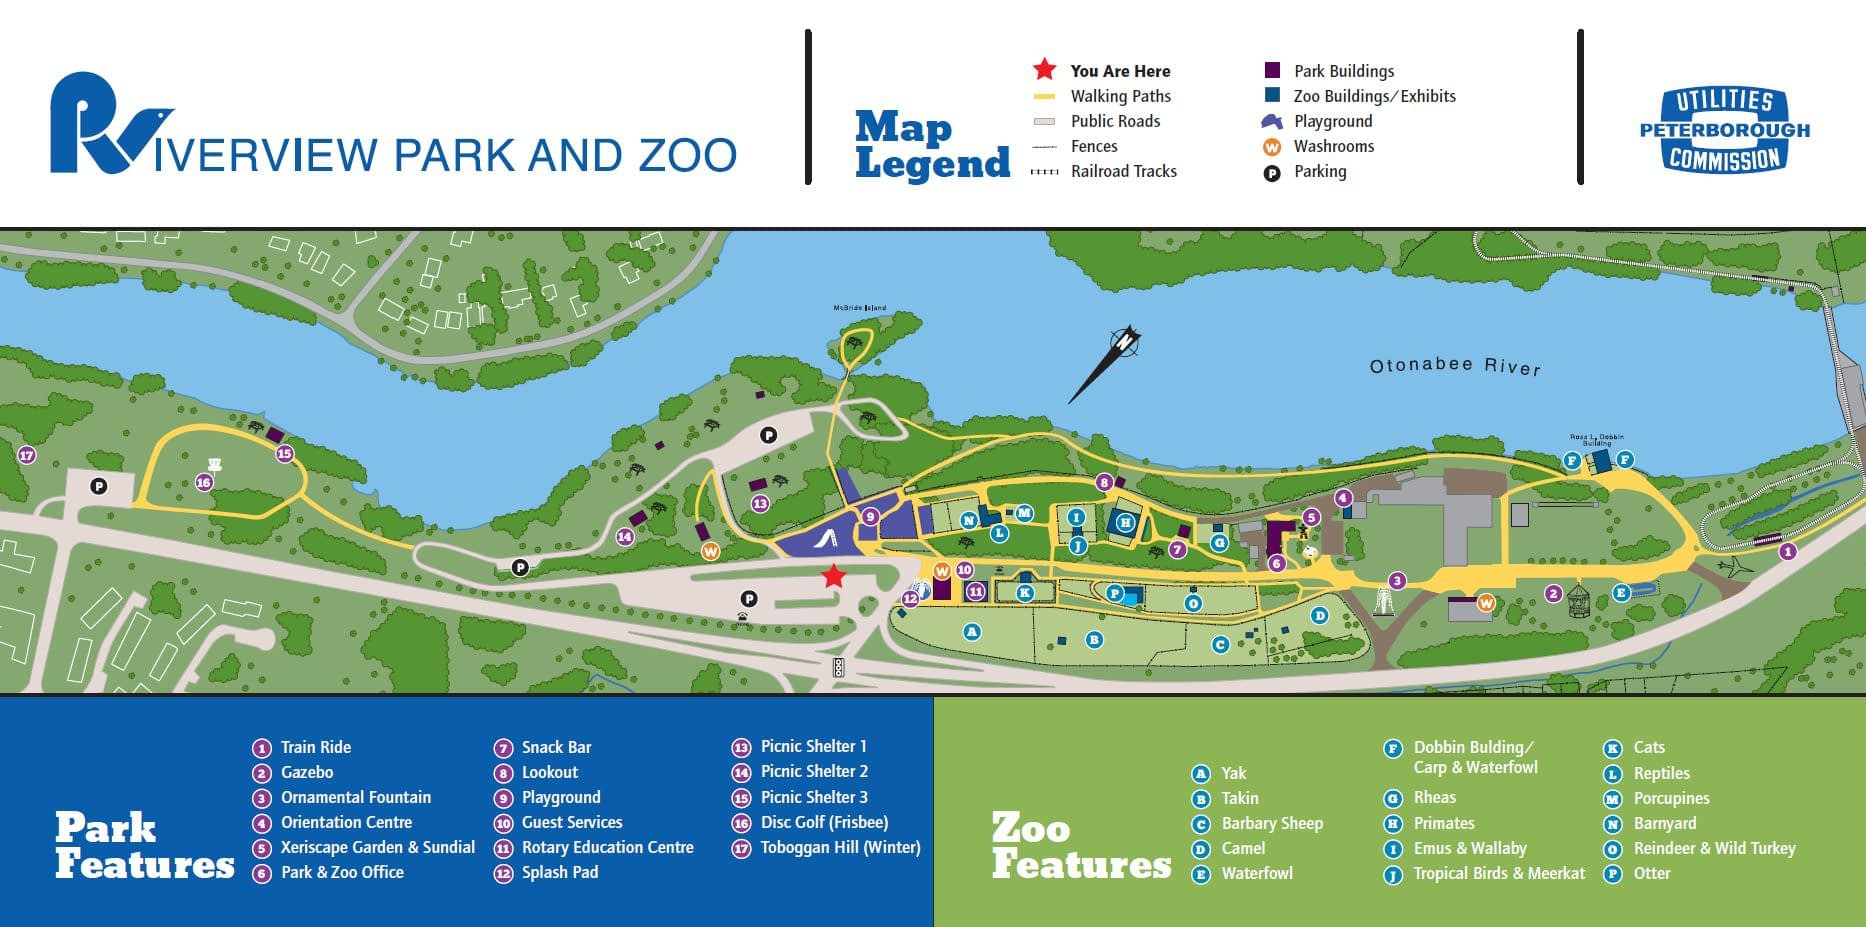 Map of Riverview Park & Zoo - 2008